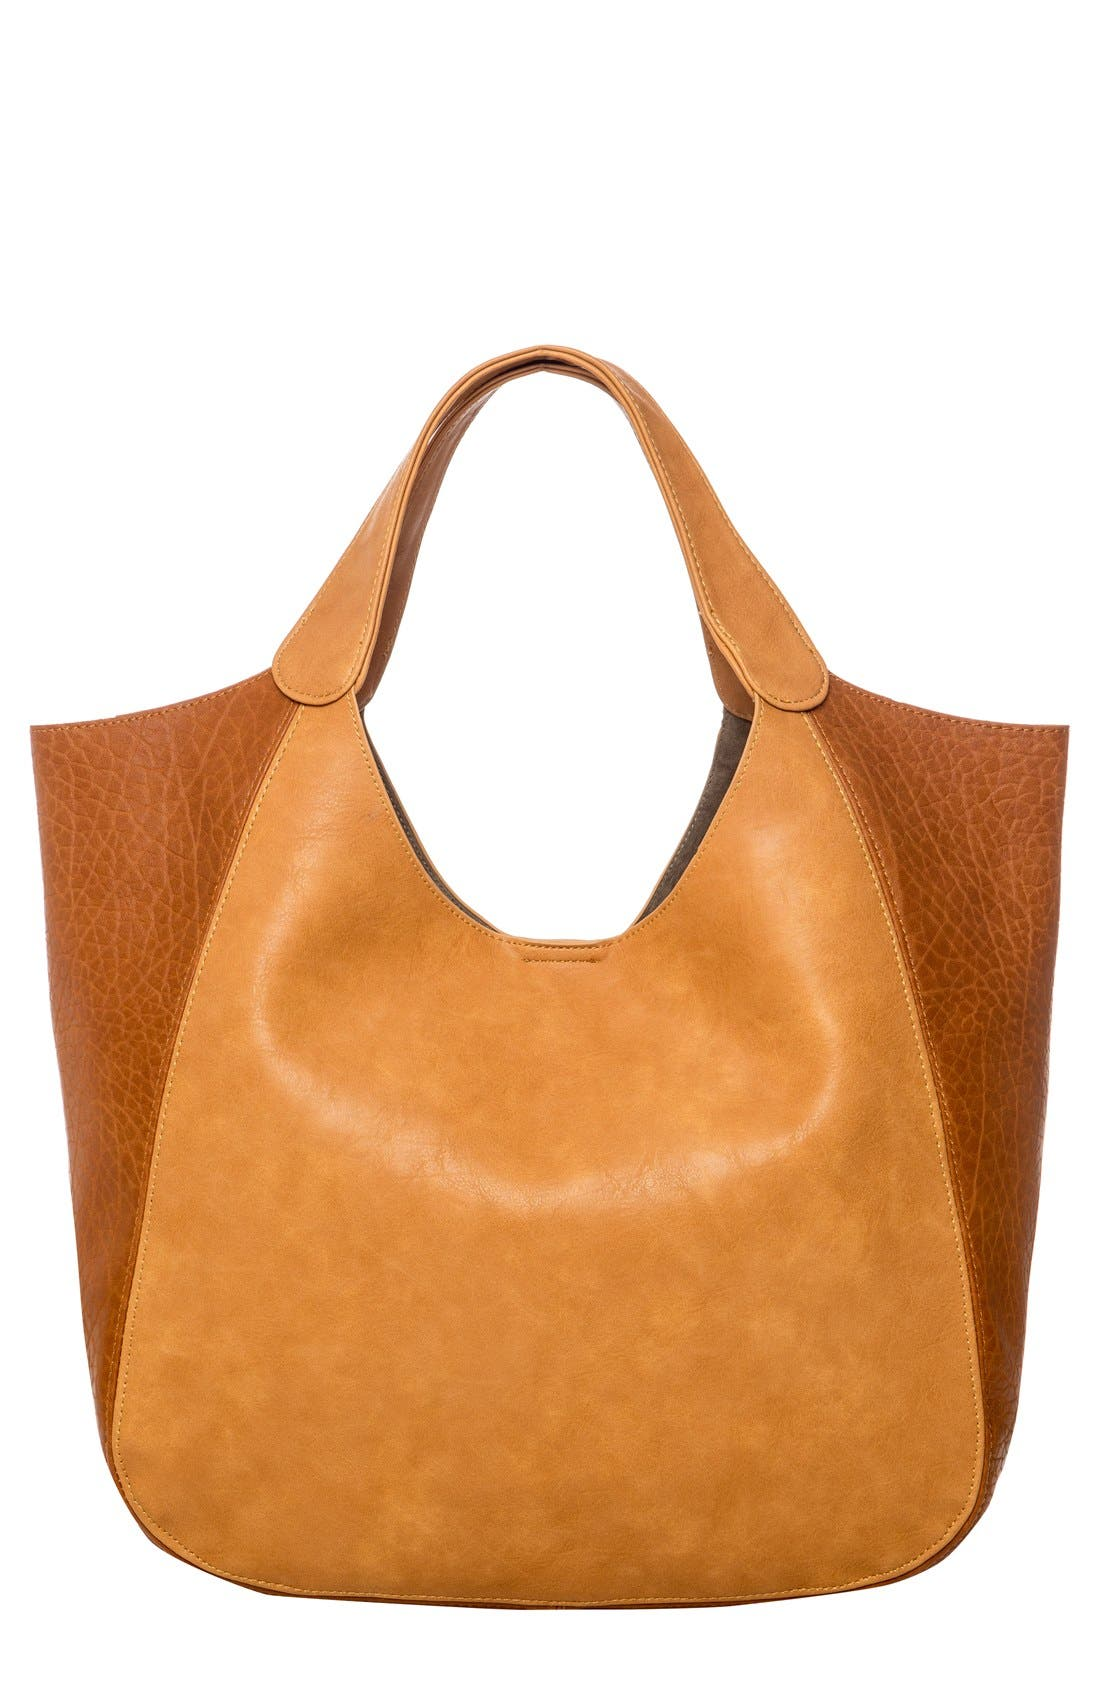 Masterpiece Vegan Leather Tote,                             Main thumbnail 1, color,                             200